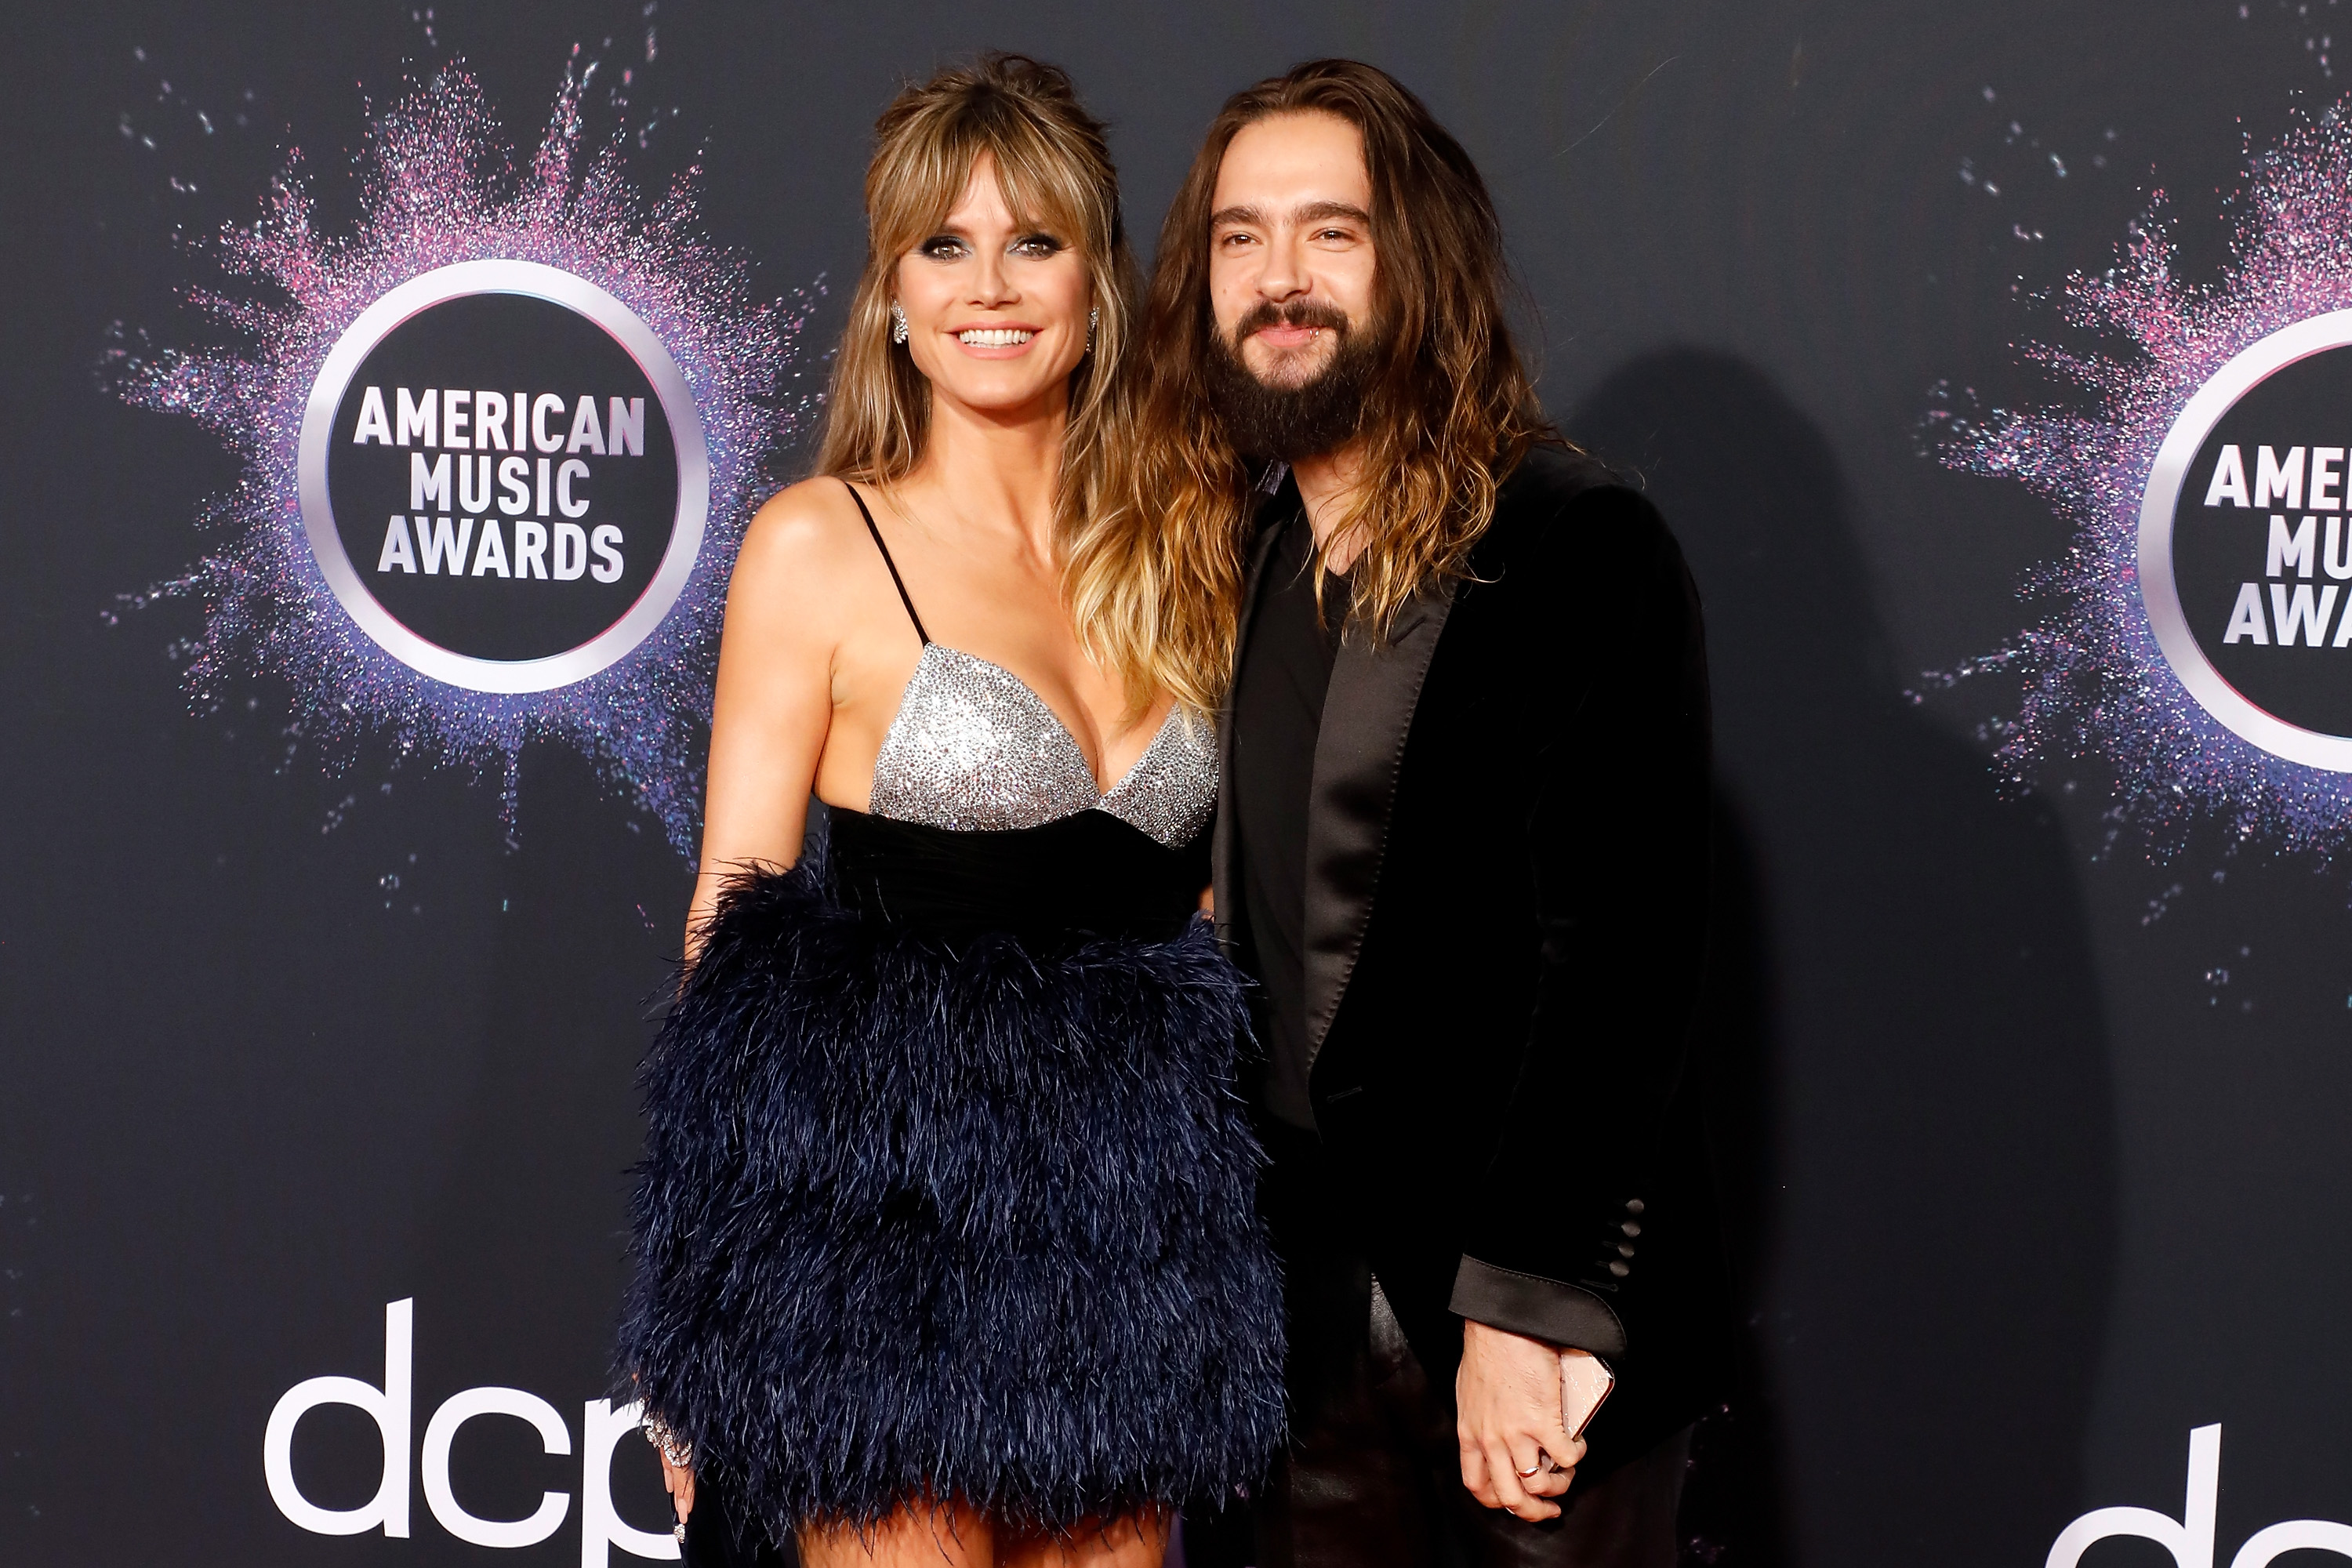 Westlake Legal Group GettyImages-1189905589 Heidi Klum posts sultry pool pic with husband Tom Kaulitz on vacation in Mexico Jessica Napoli fox-news/person/heidi-klum fox-news/entertainment/style fox news fnc/entertainment fnc article 8f4365a5-d528-5d46-a944-afef2bba362f